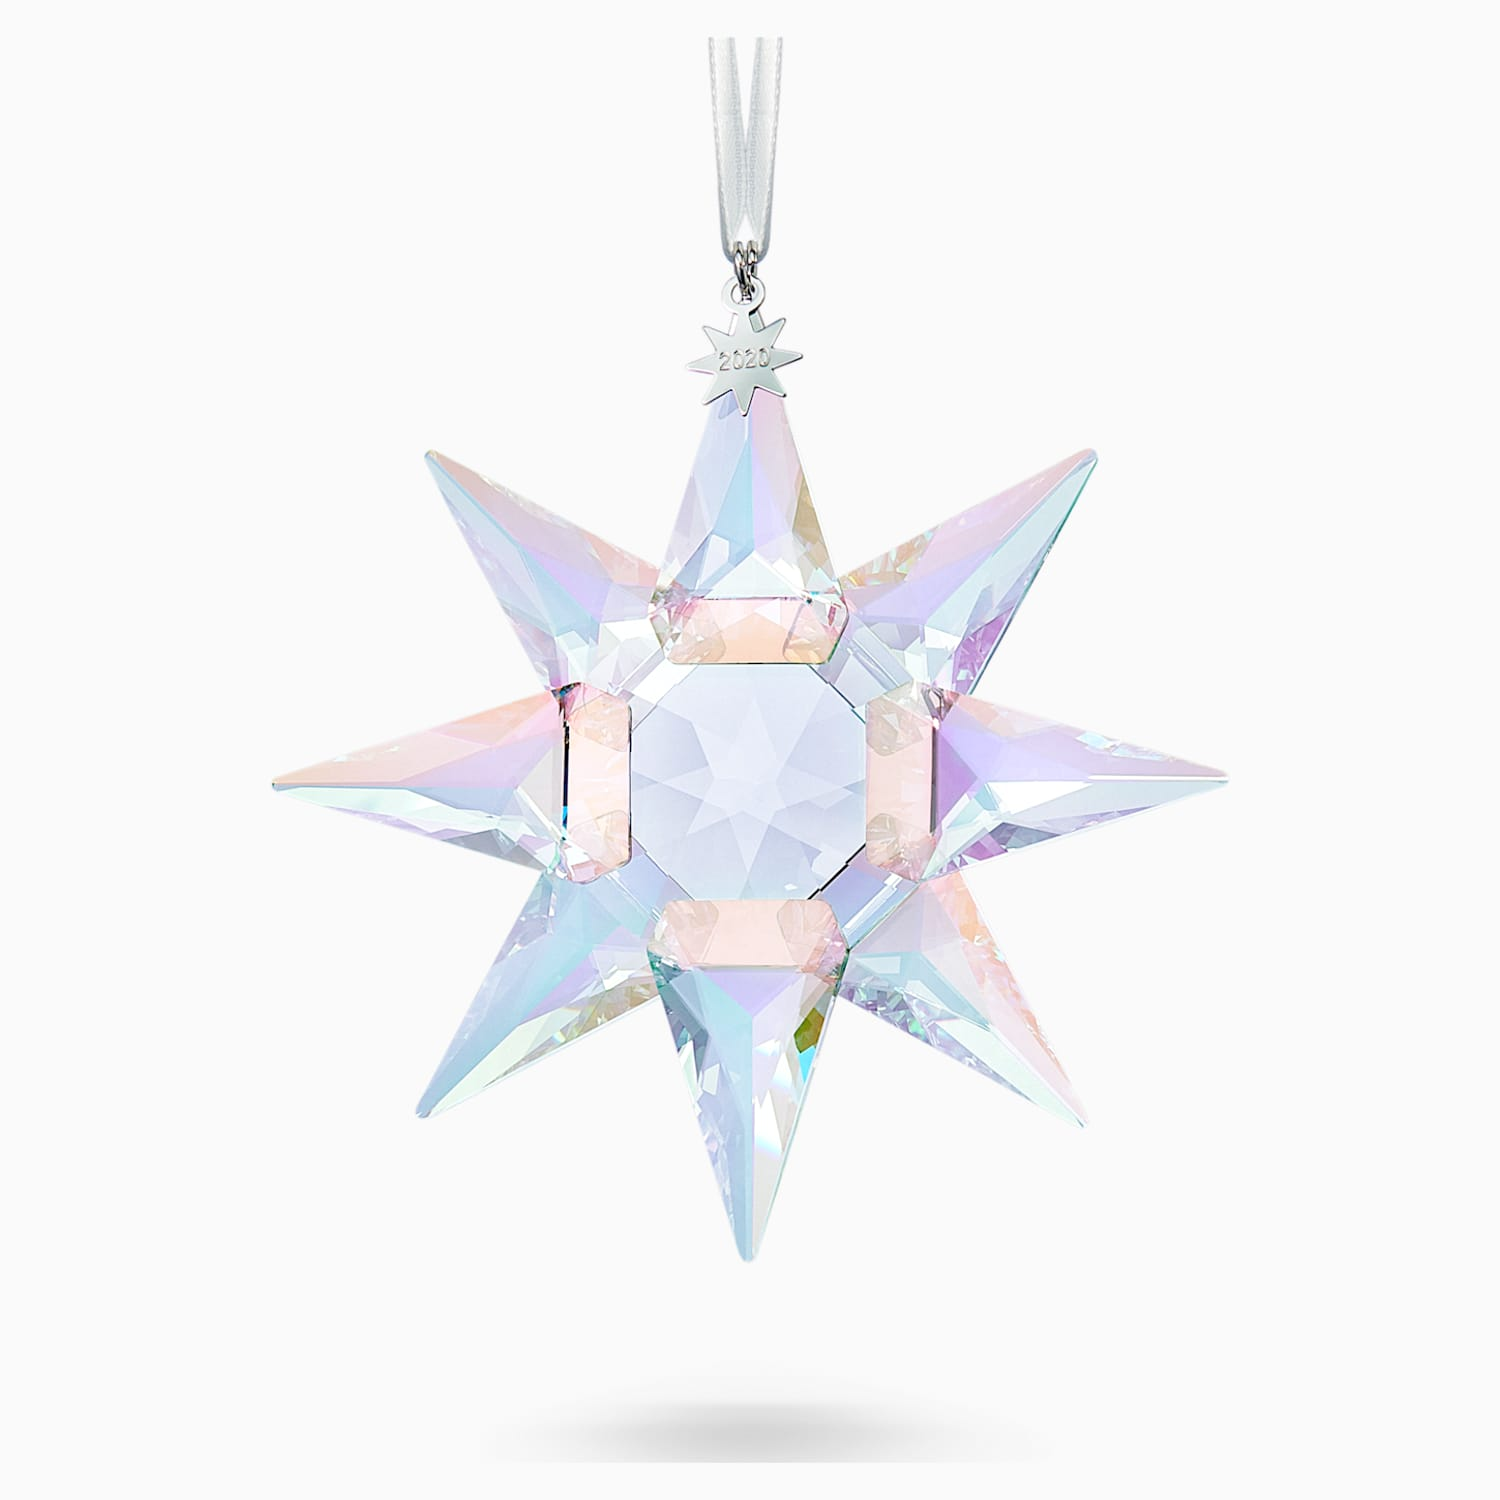 2020 Swarworski Christmas Ornament Anniversary Ornament, Annual Edition 2020 | Swarovski.com